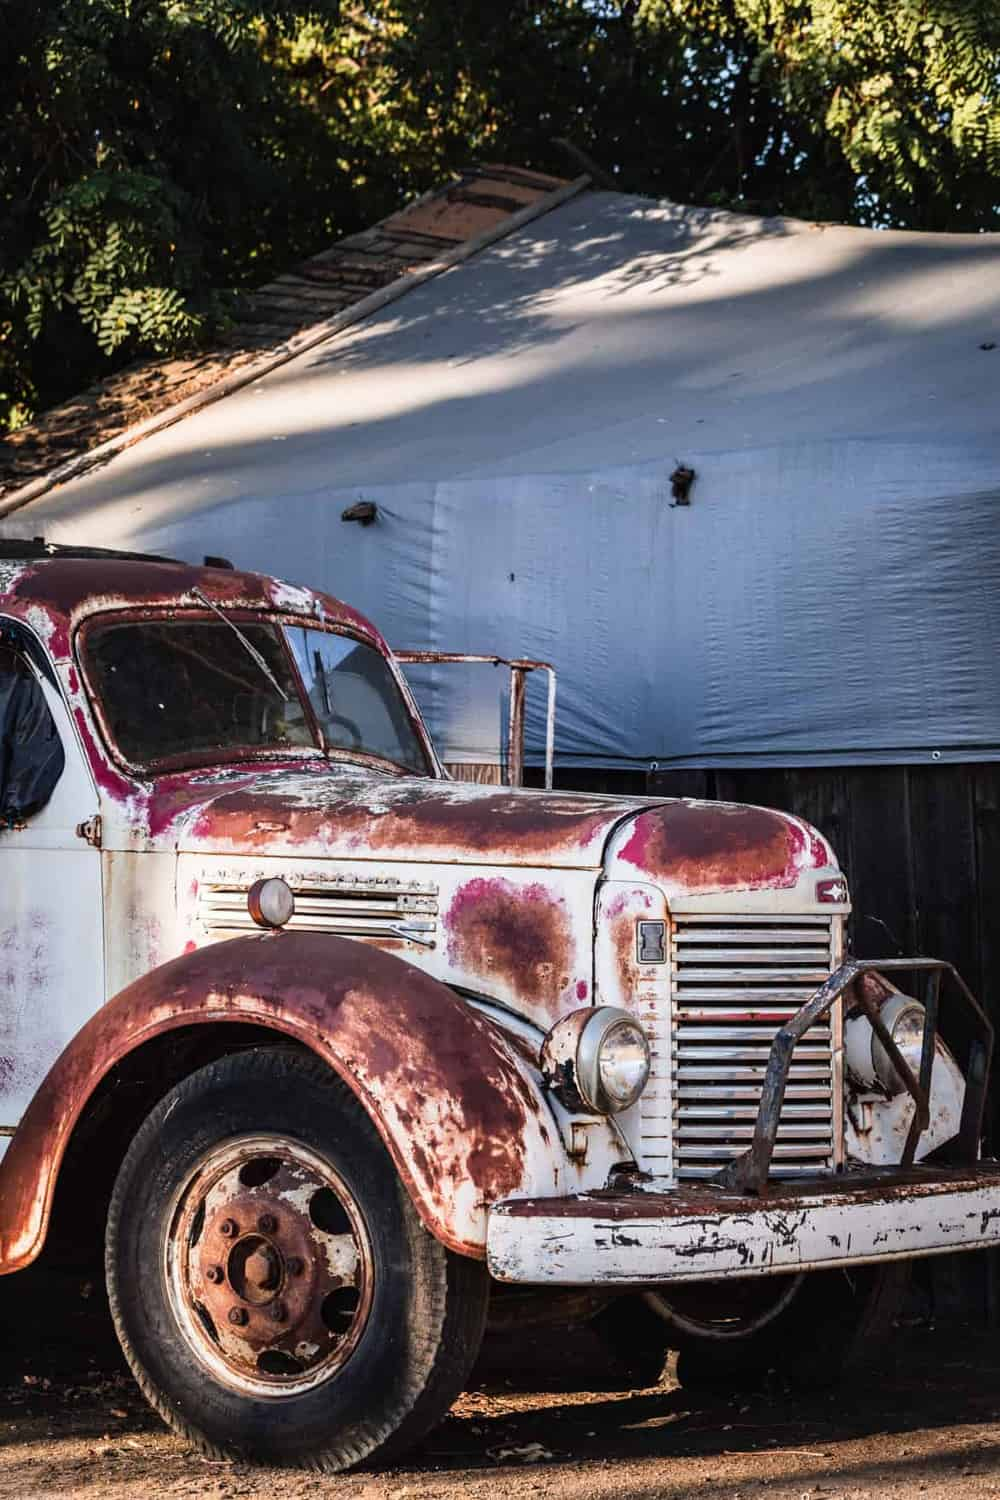 A very old truck by the farm.